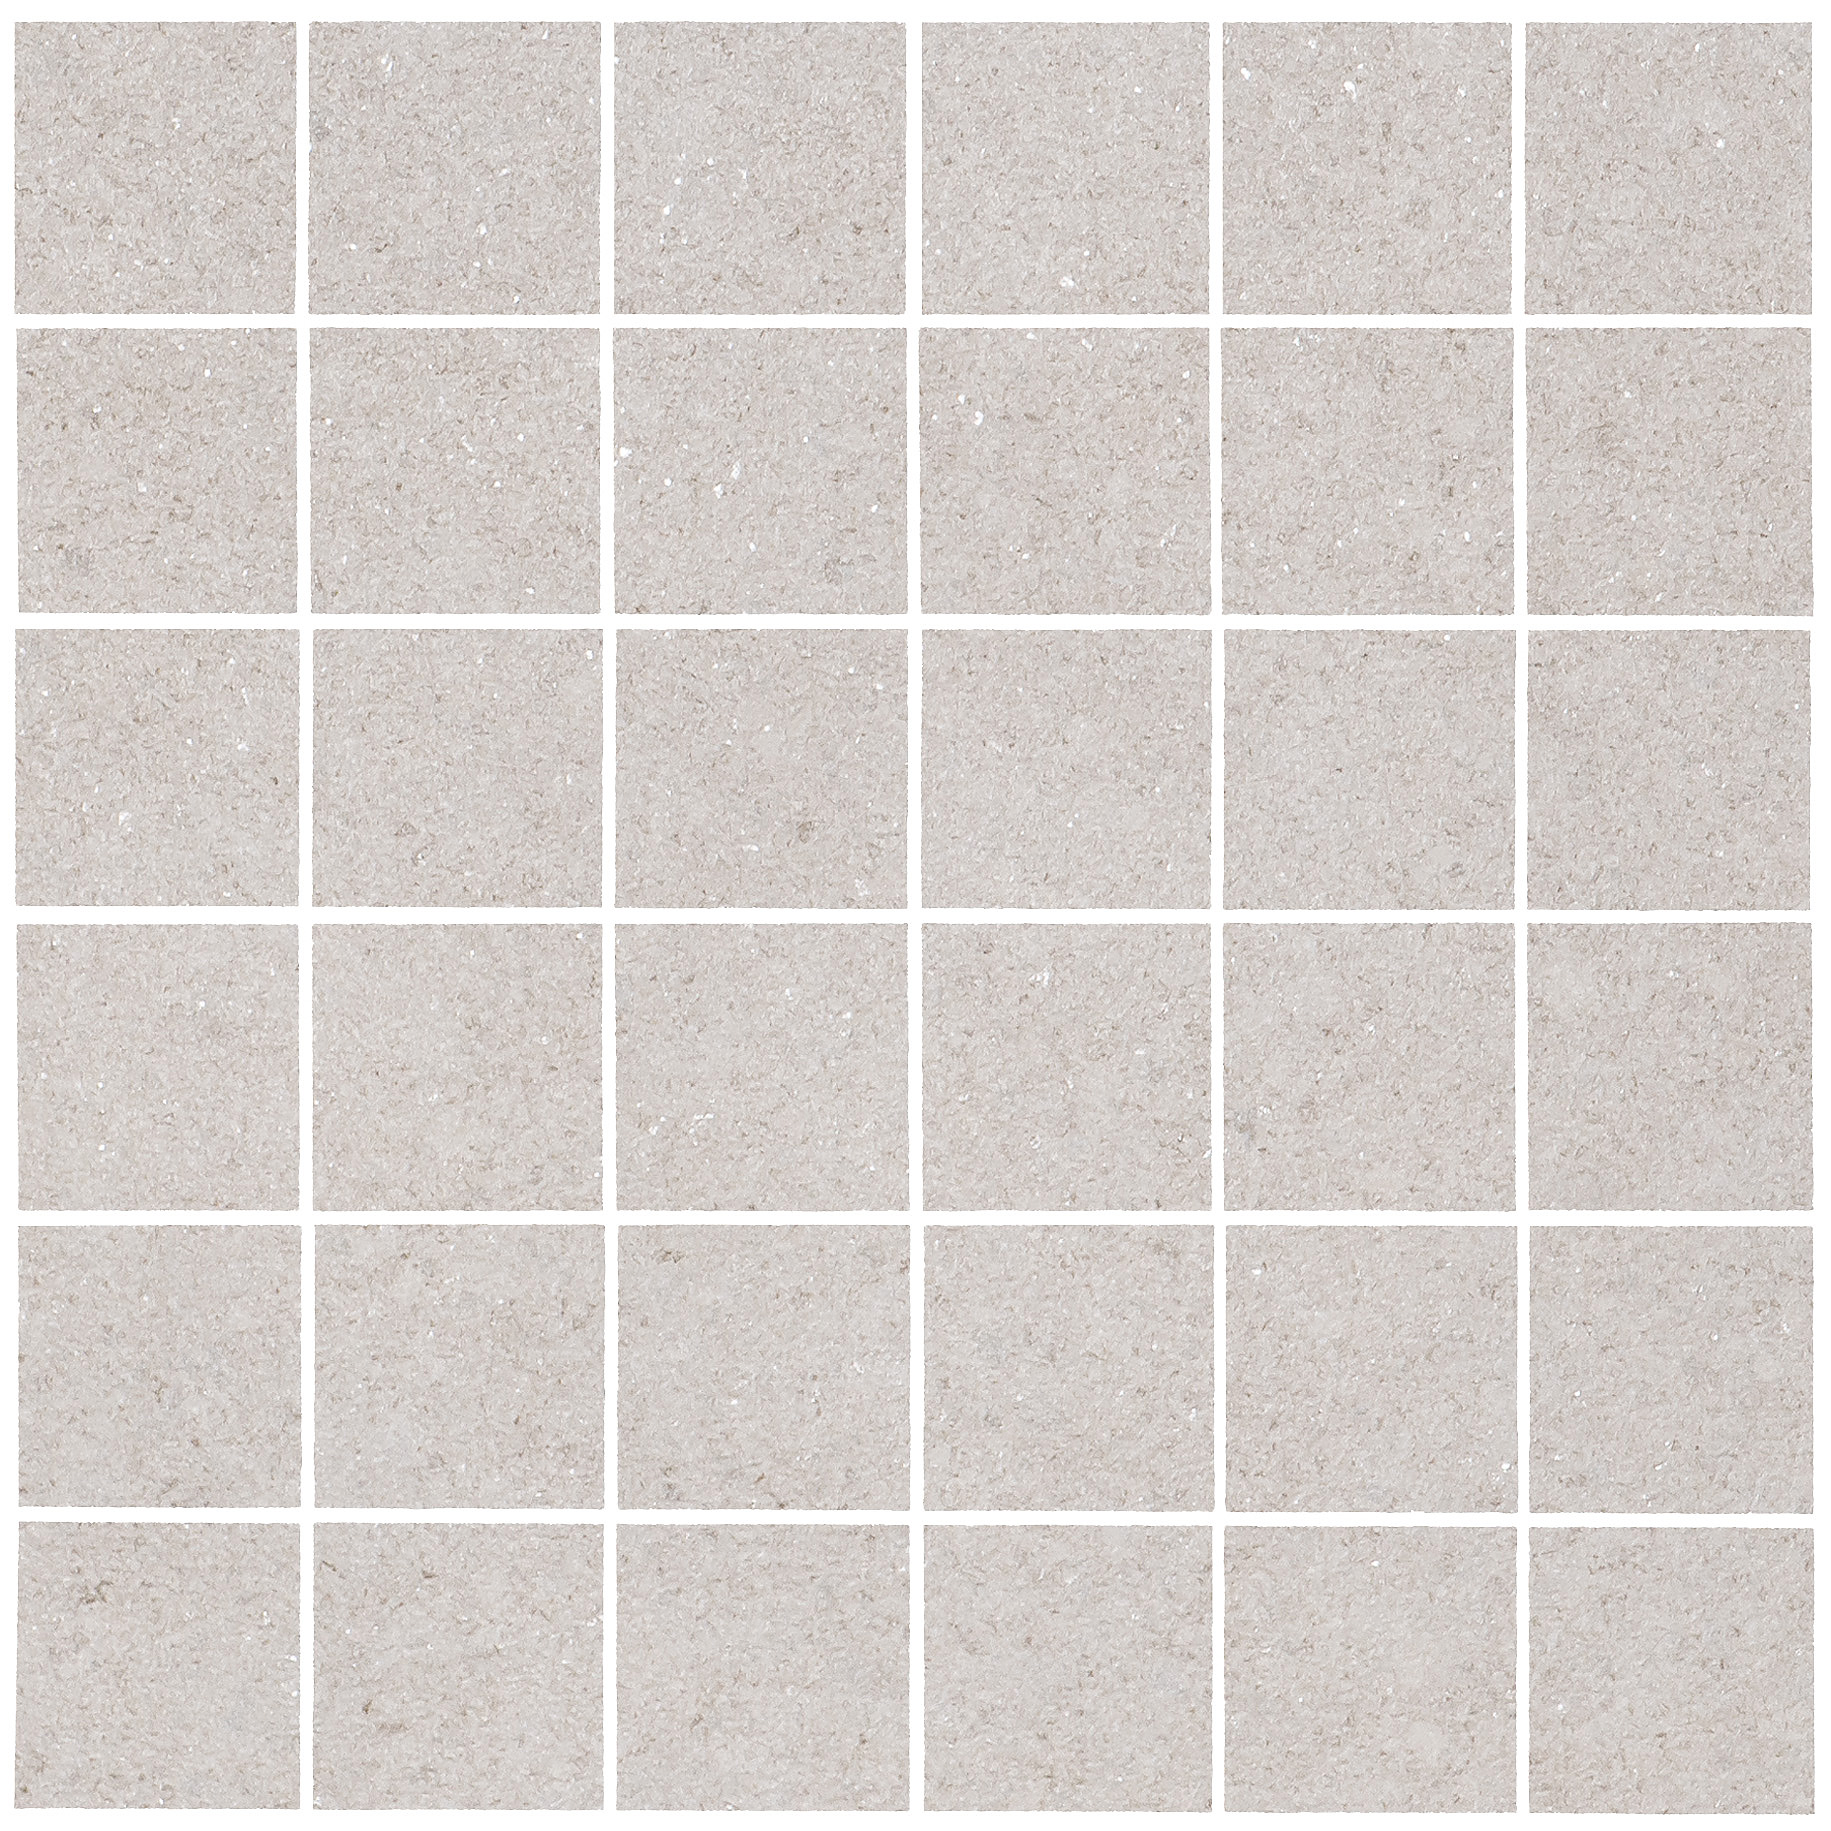 Klinker Bricmate J0505 Stone Light Grey 5x5 cm